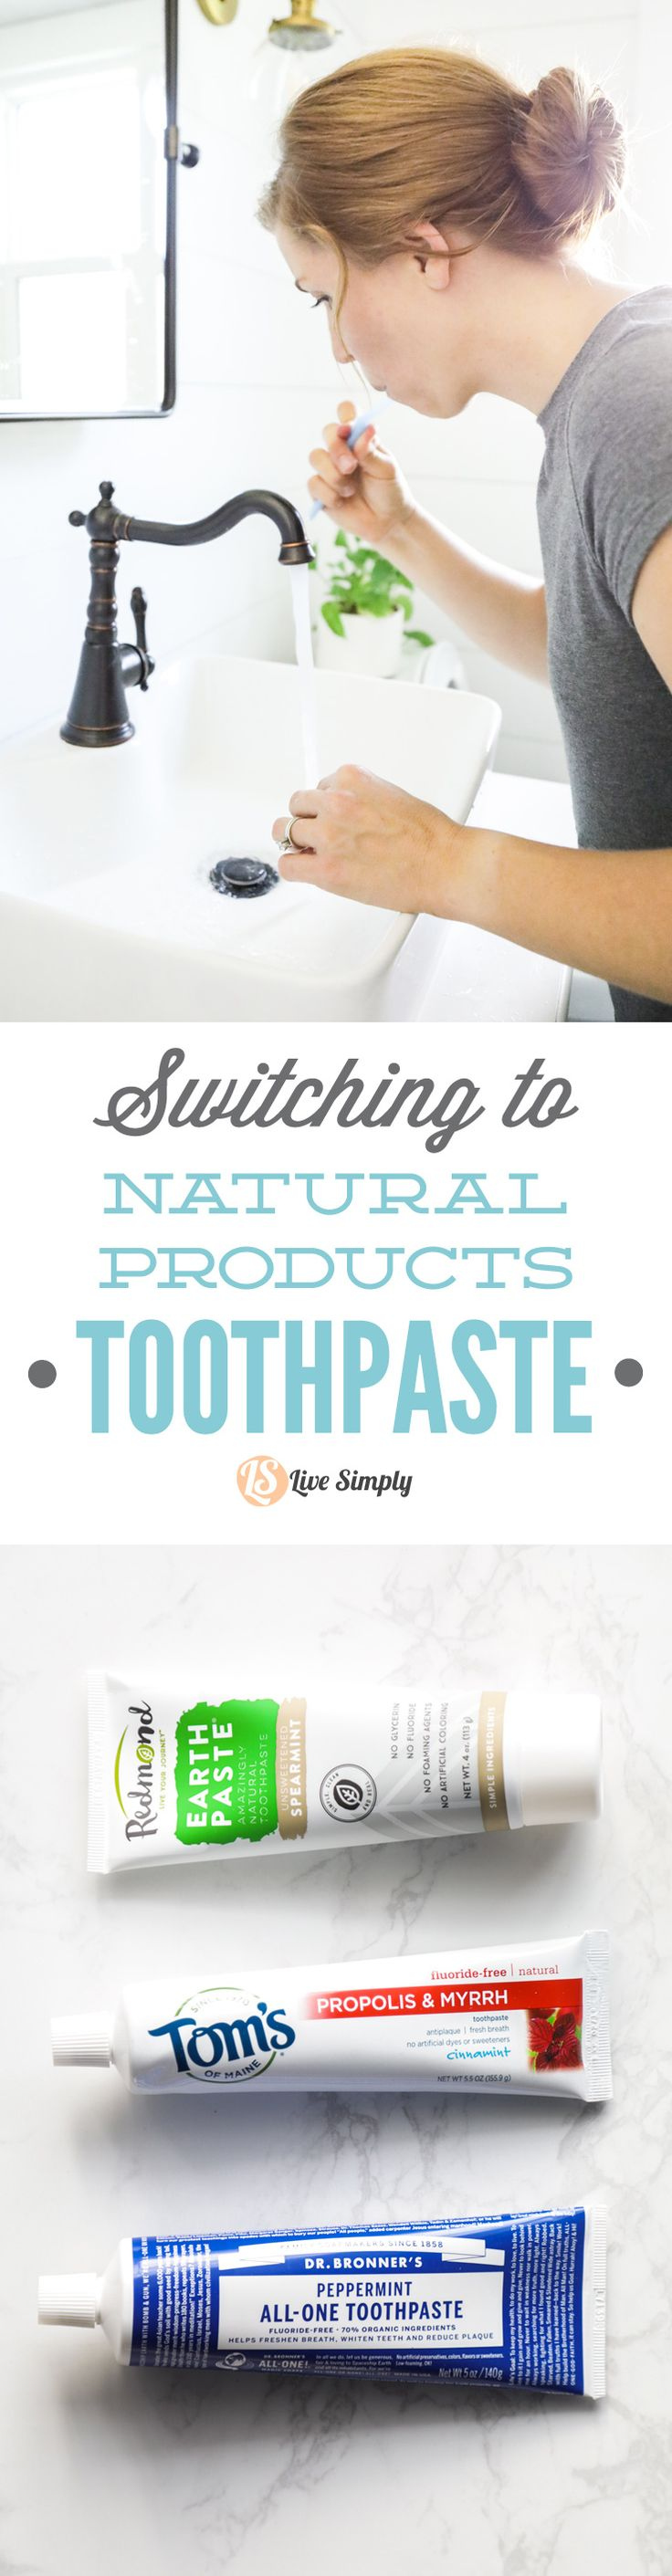 Make the switch to natural toothpaste. The best natural toothpaste options, from homemade to store-bought!